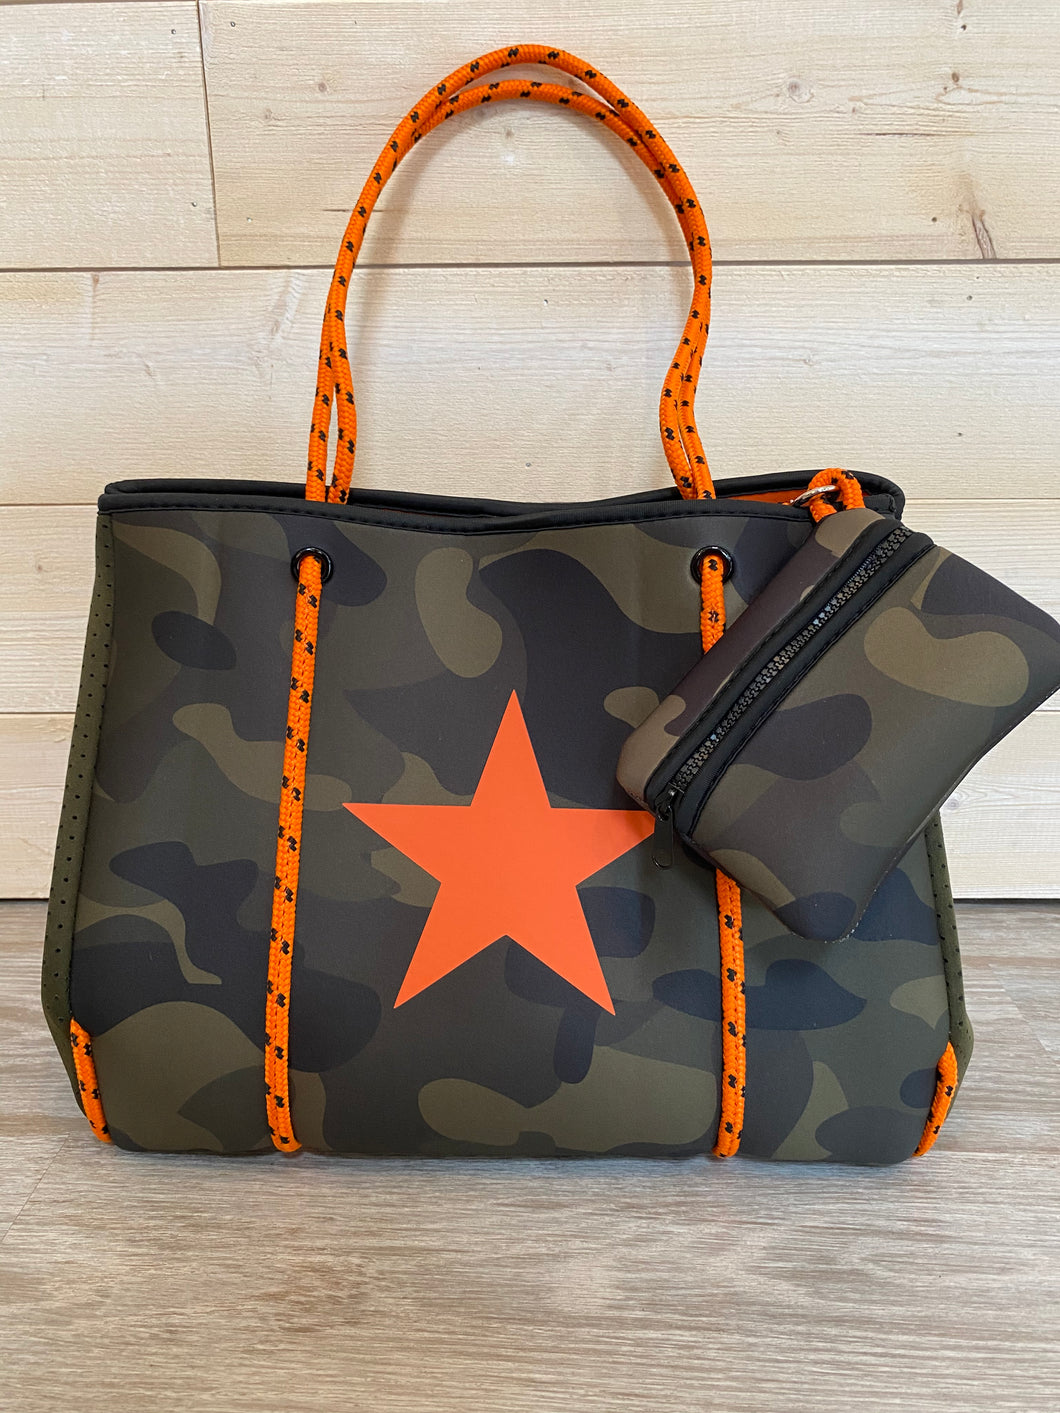 Army Camo Neoprene Tote w/Orange Ropes & Star